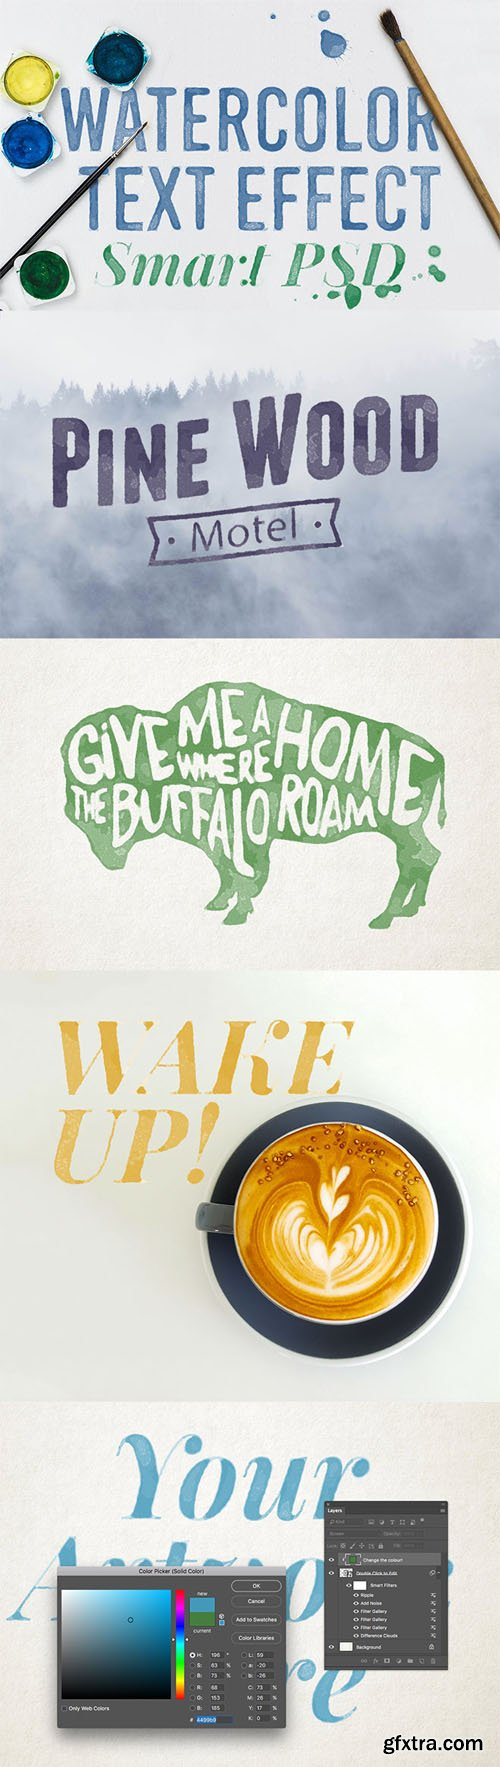 Watercolour Text Effect Smart PSD for Adobe Photoshop